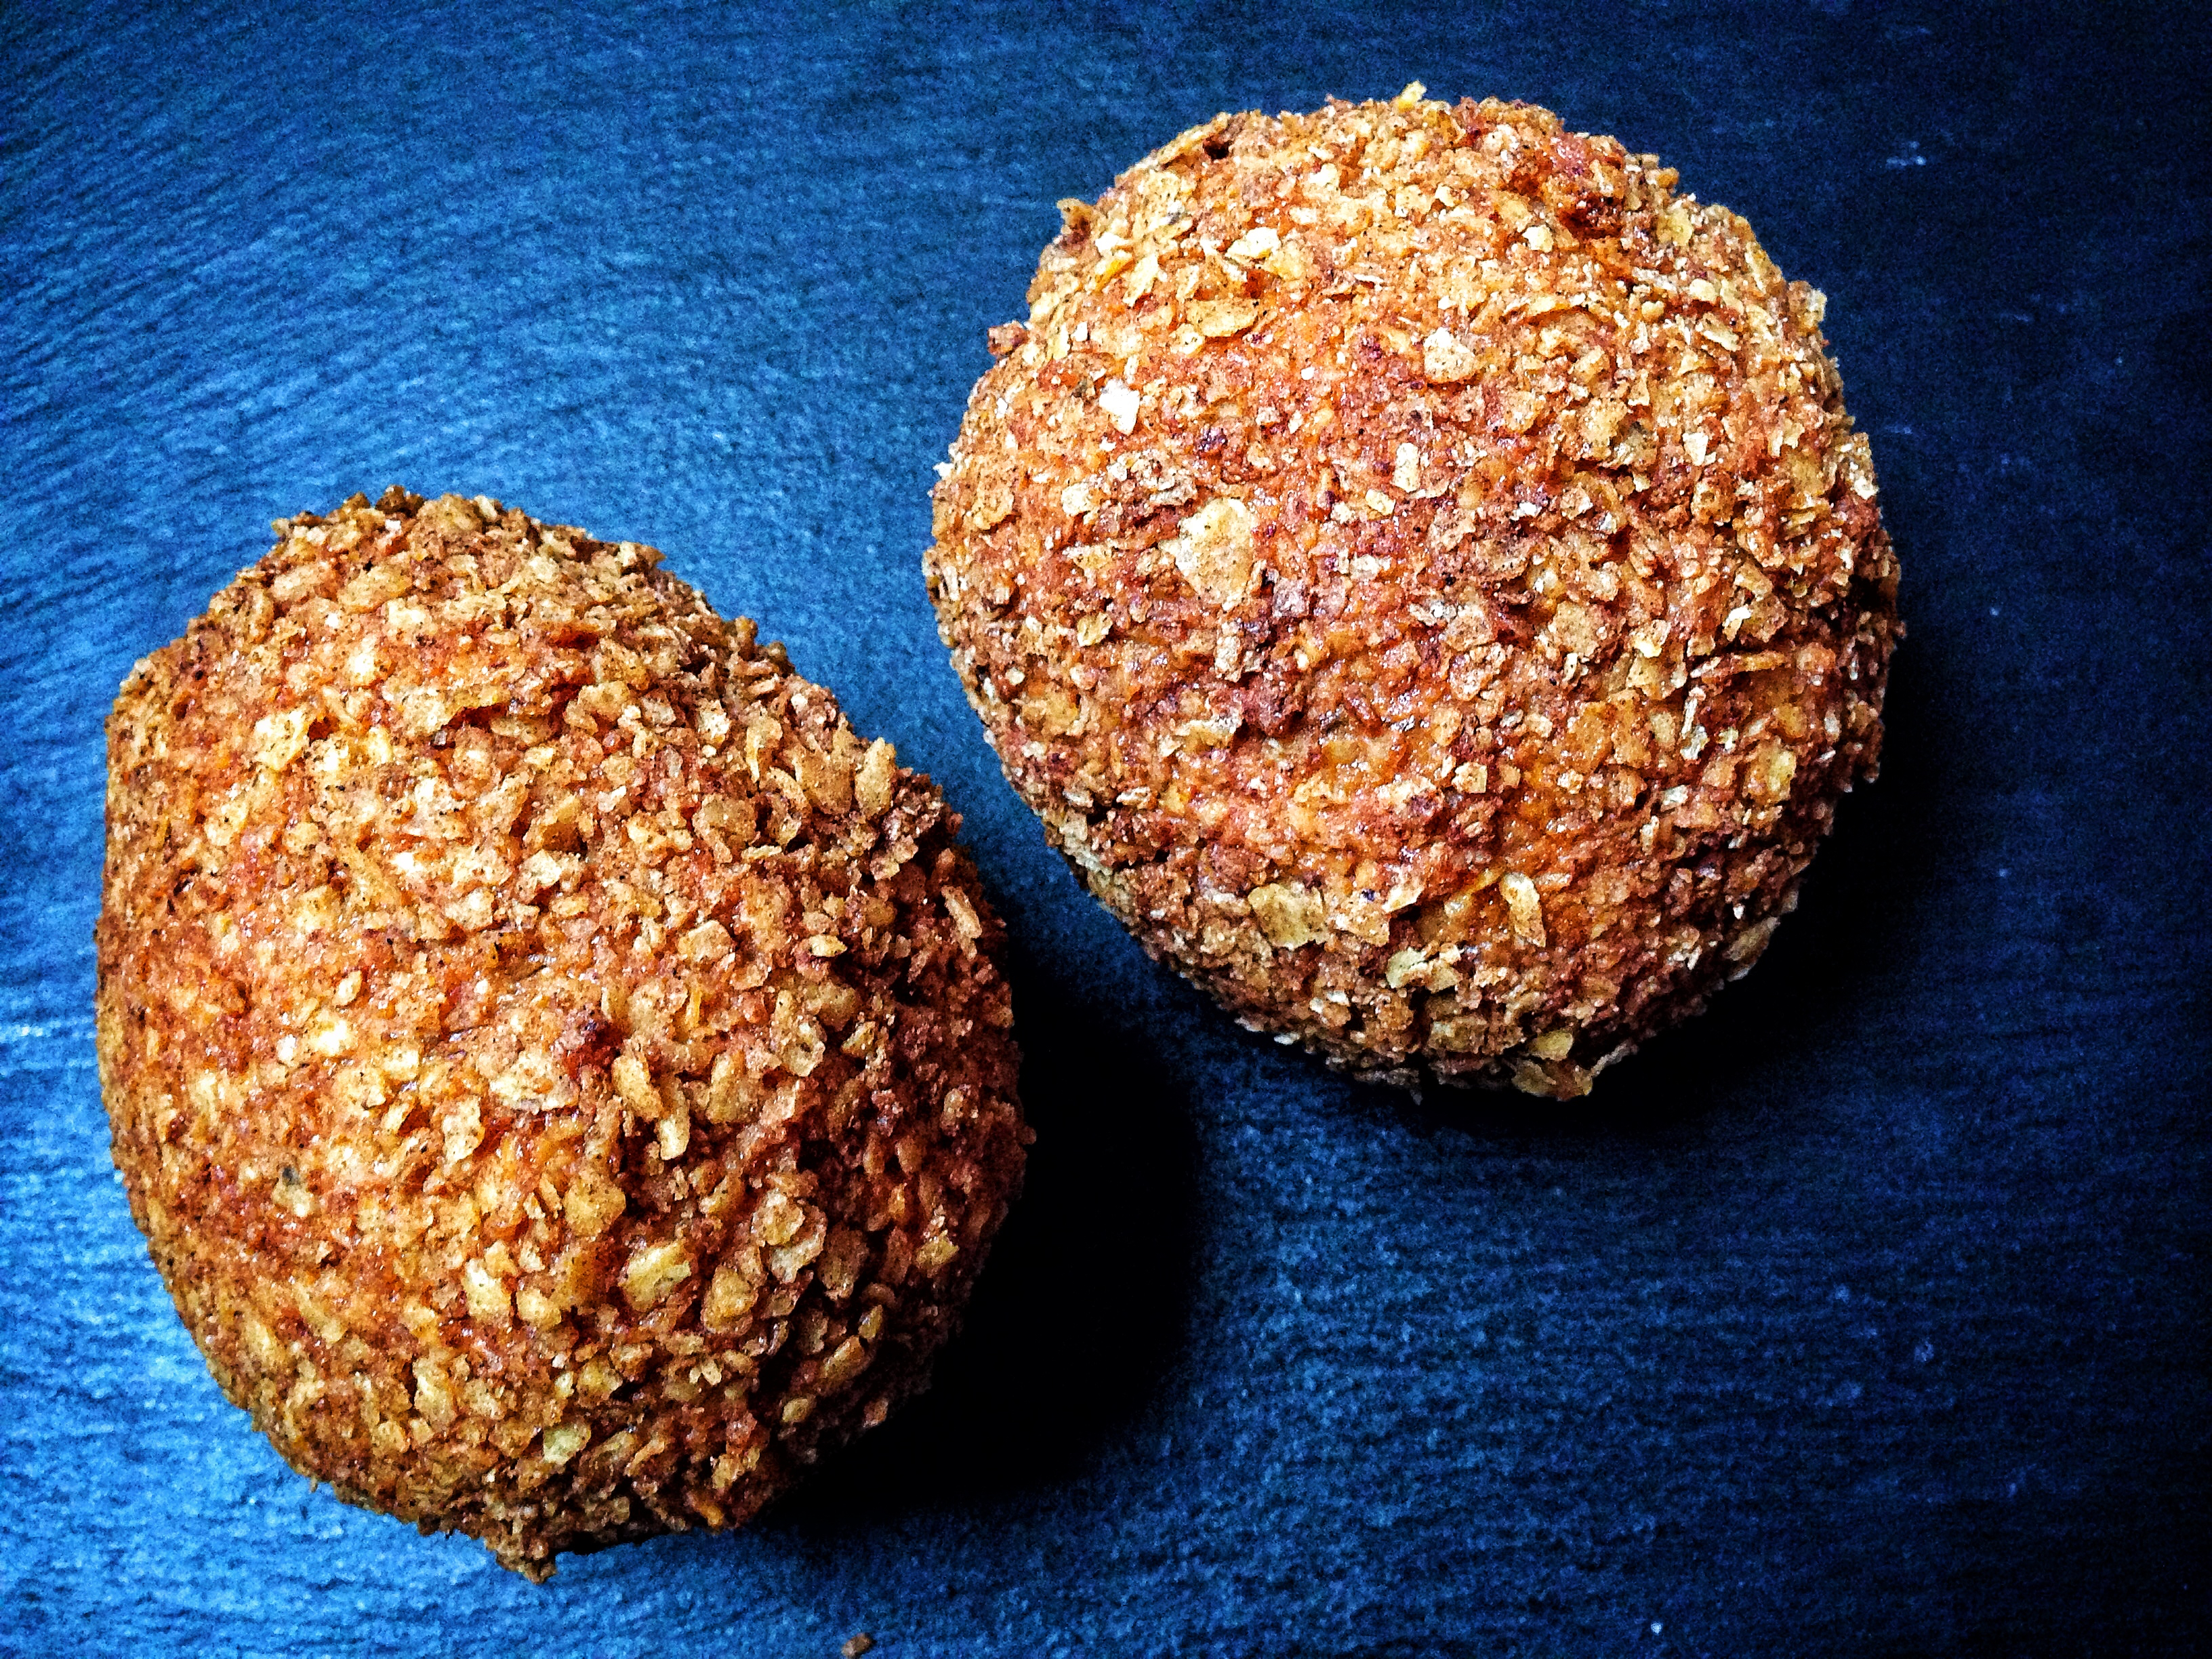 Doritos scotch eggs!